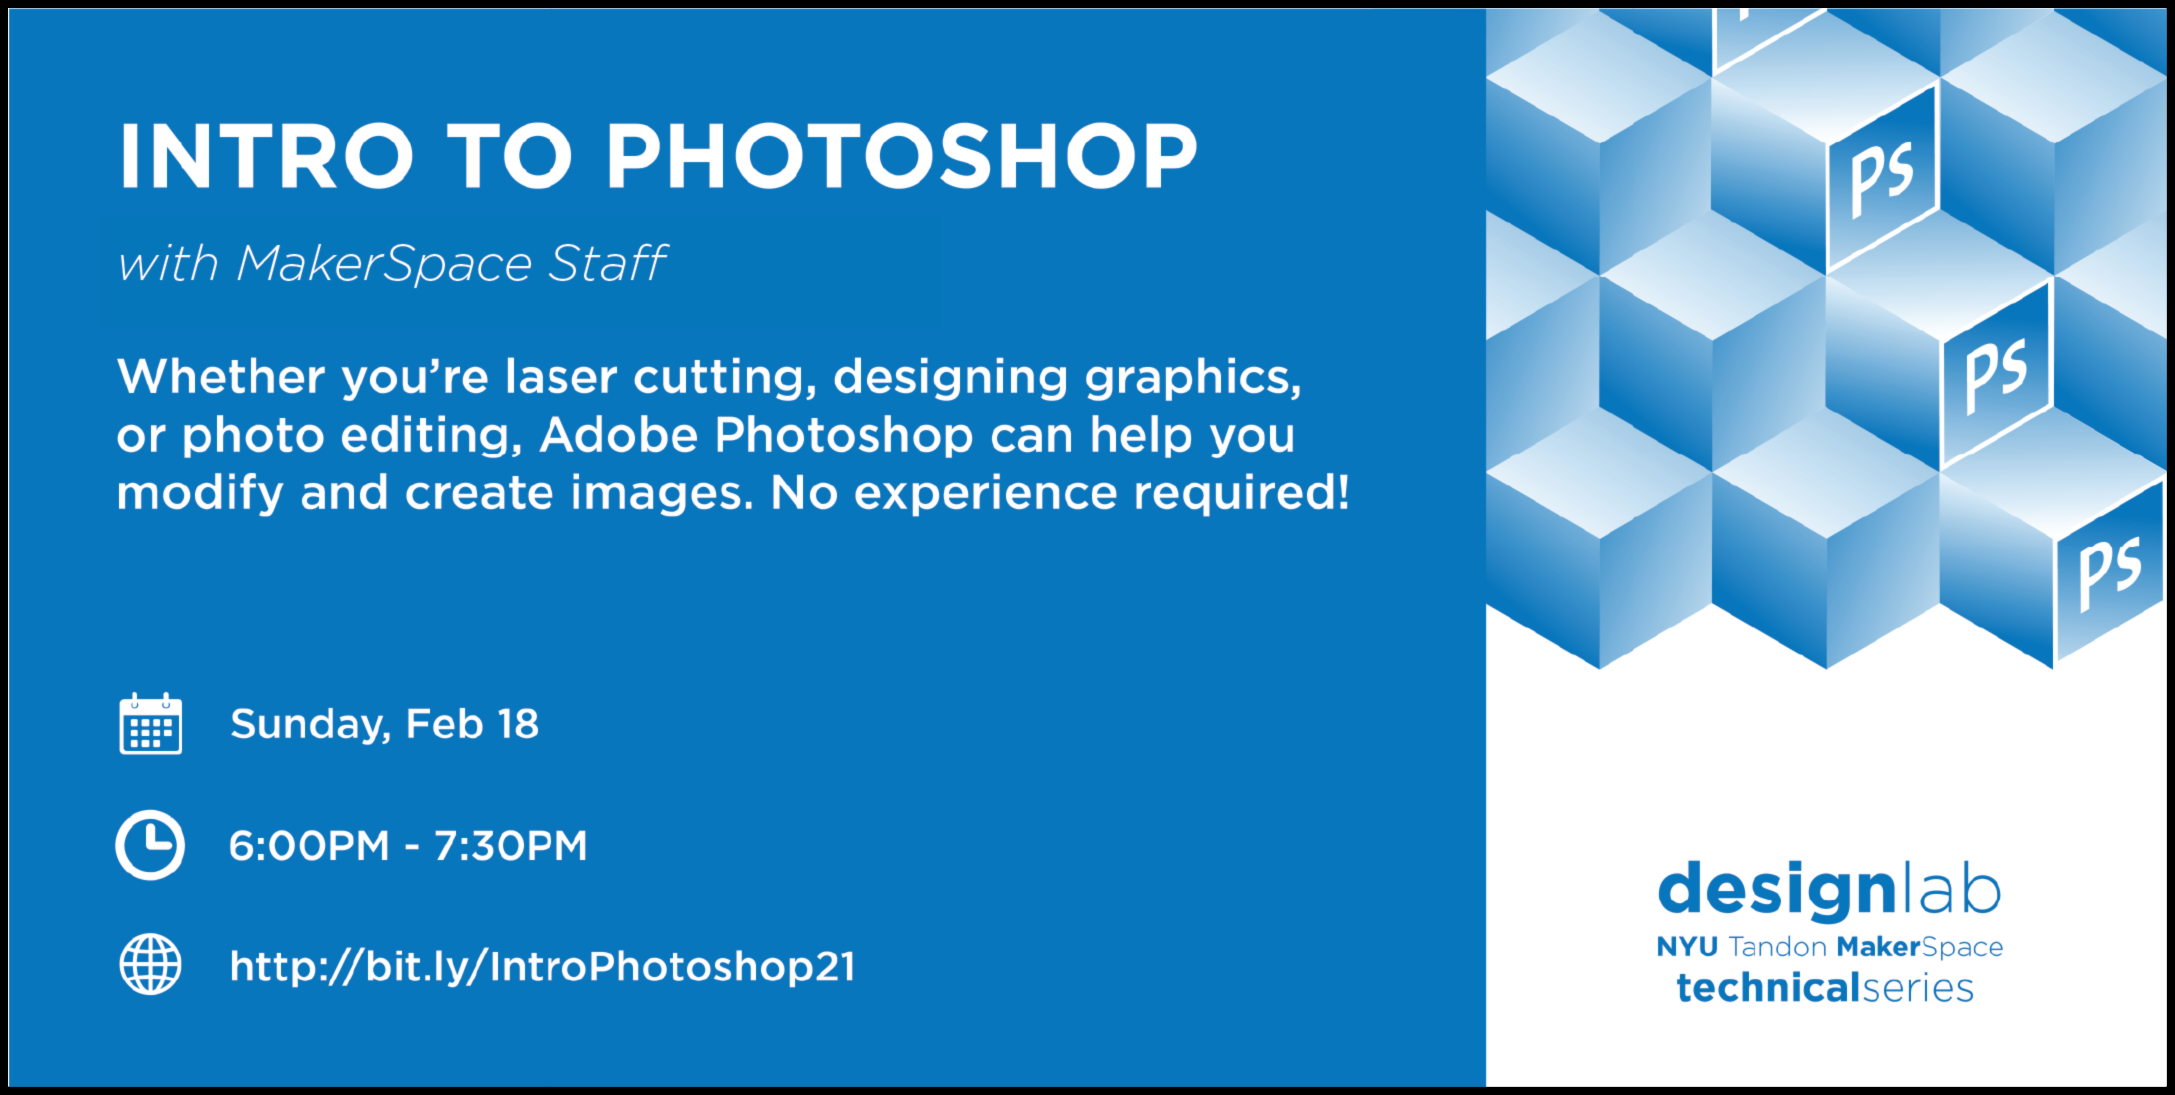 intro to photoshop flyer